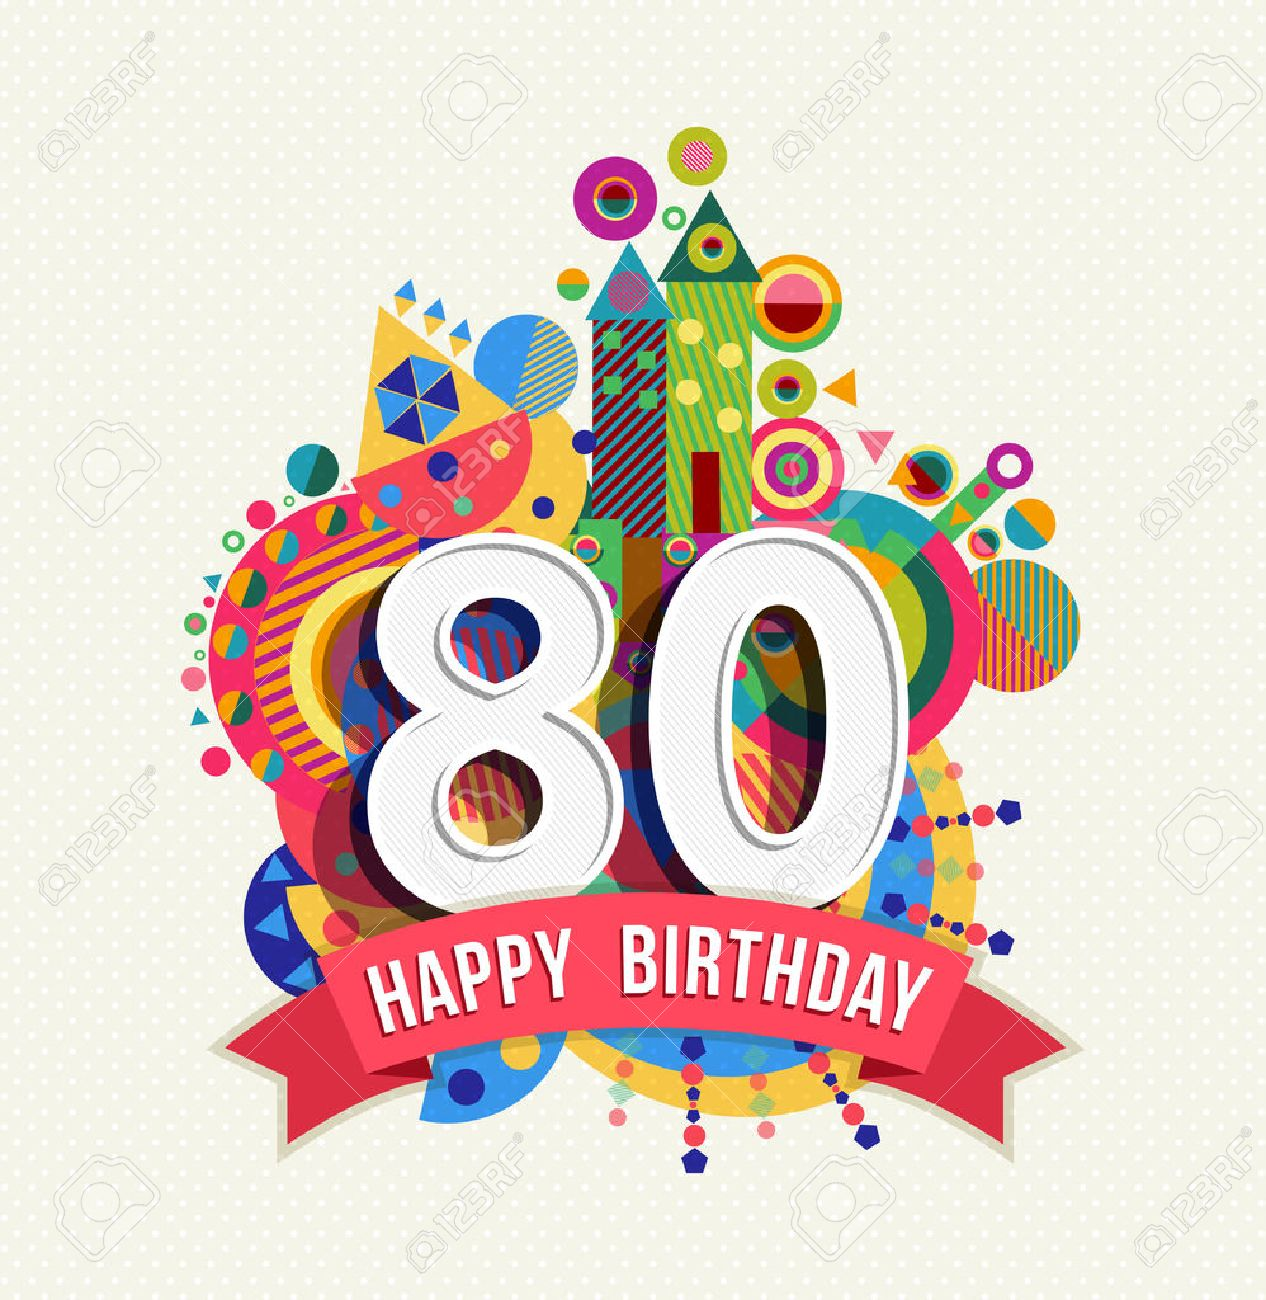 Happy Birthday eighty 80 year, fun celebration greeting card with number, text label and colorful geometry design. EPS10 vector. - 50199043